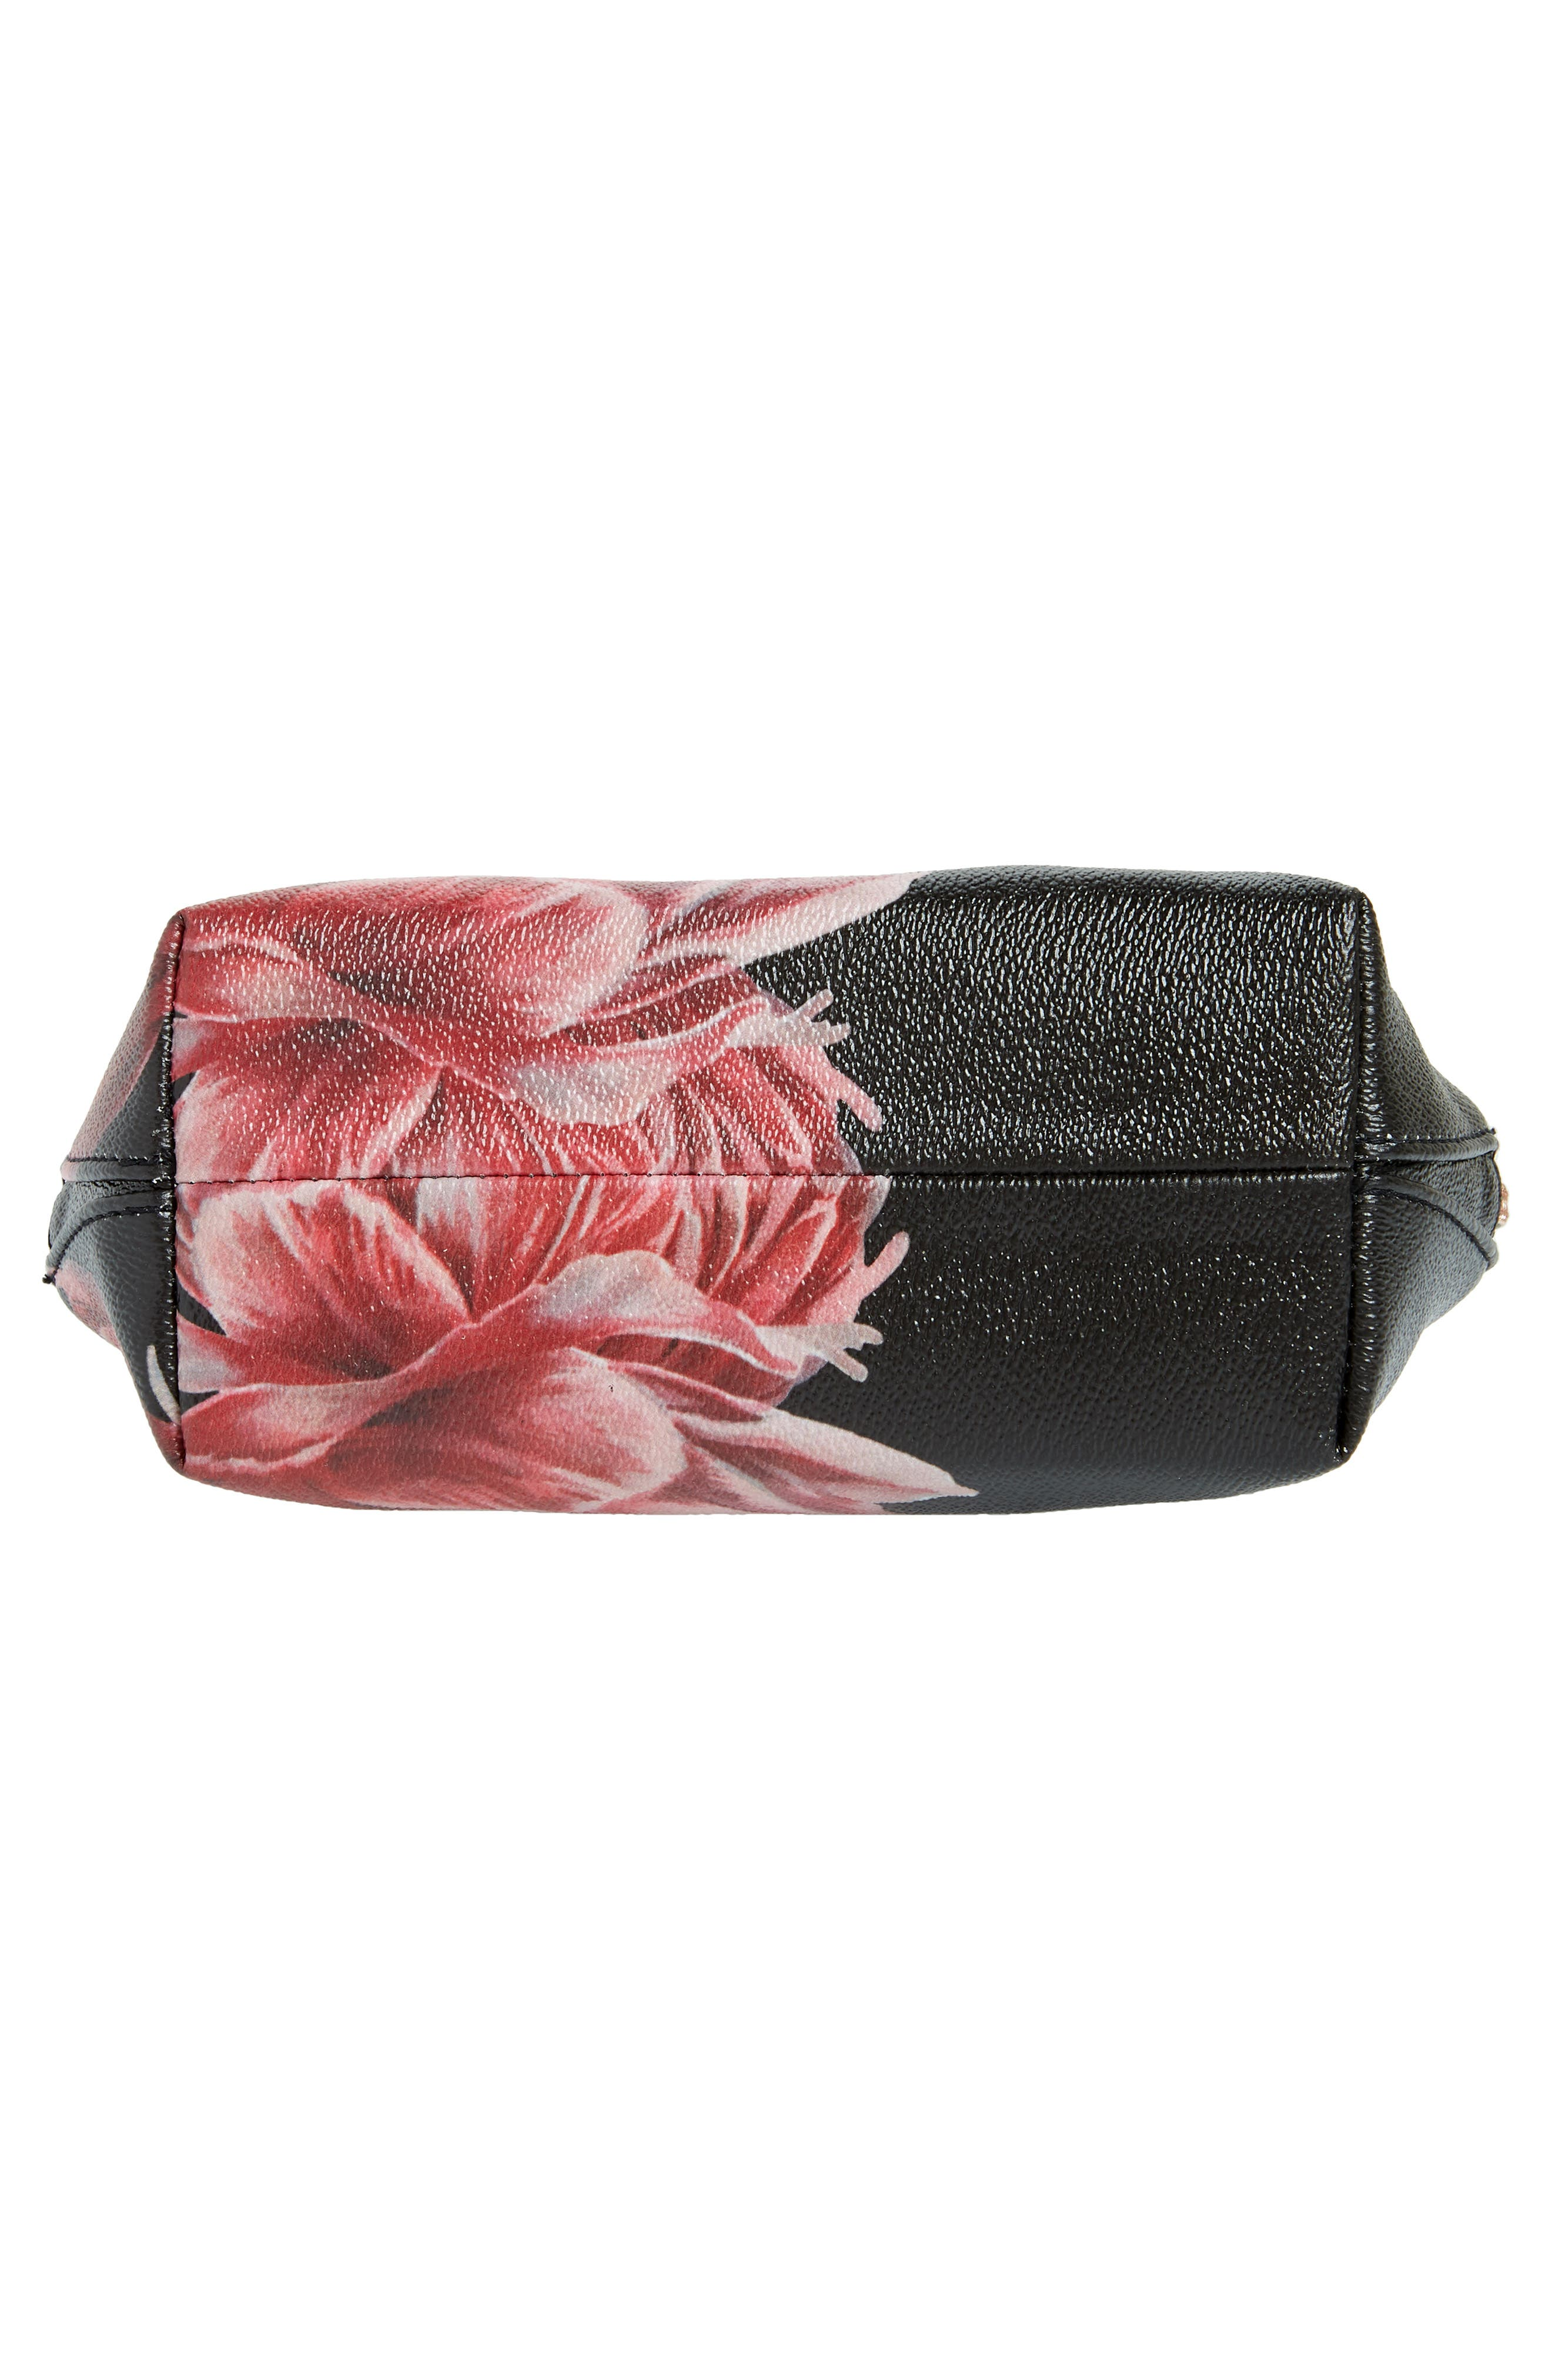 Tranquility Cosmetics Case,                             Alternate thumbnail 5, color,                             001